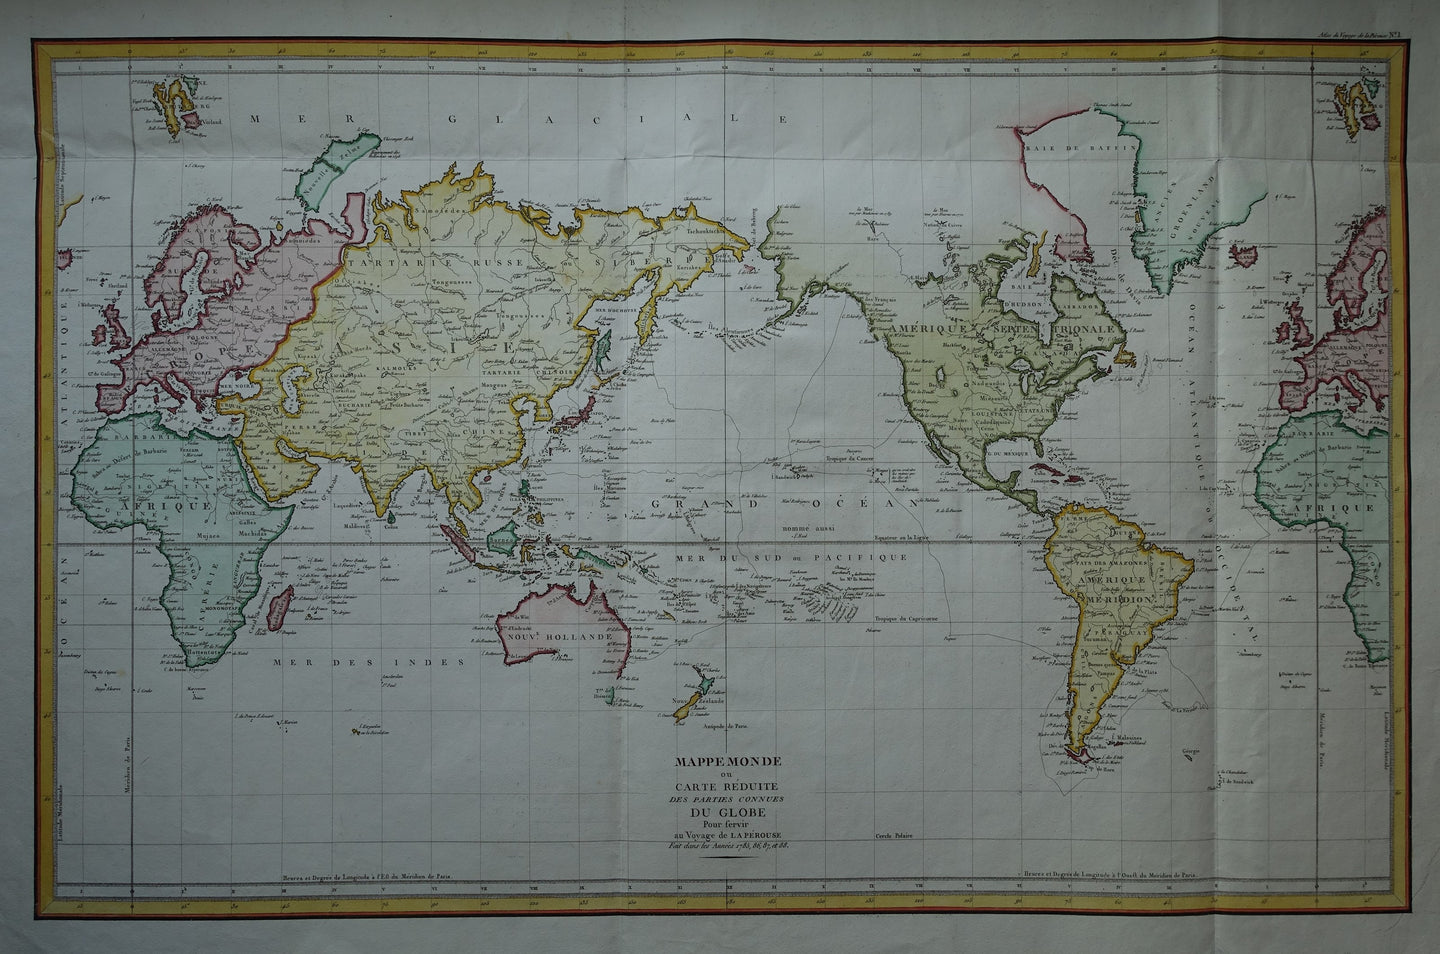 Wereld Pacific centered world map - JF de Galaup, graaf de La Pérouse - 1797